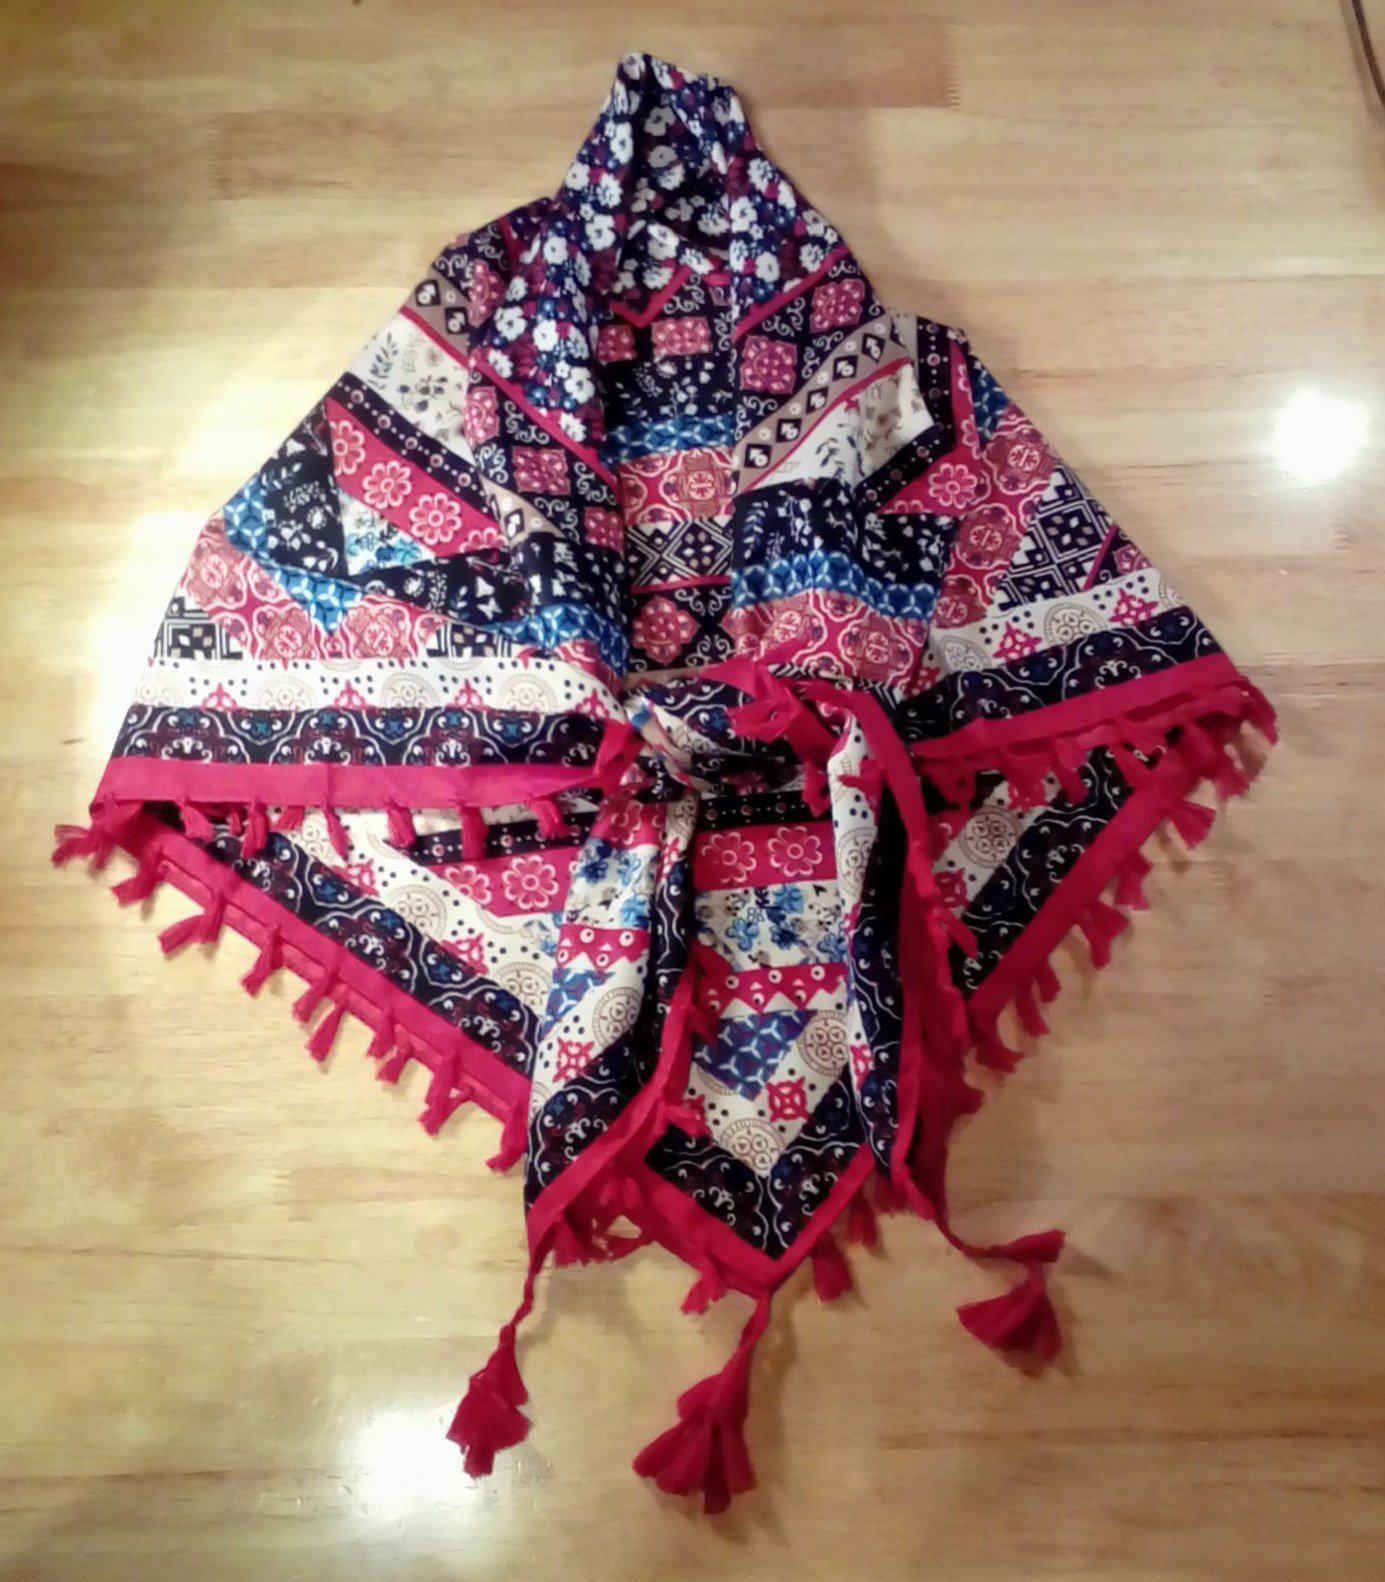 Love the style, pattern and colors of this scarf!